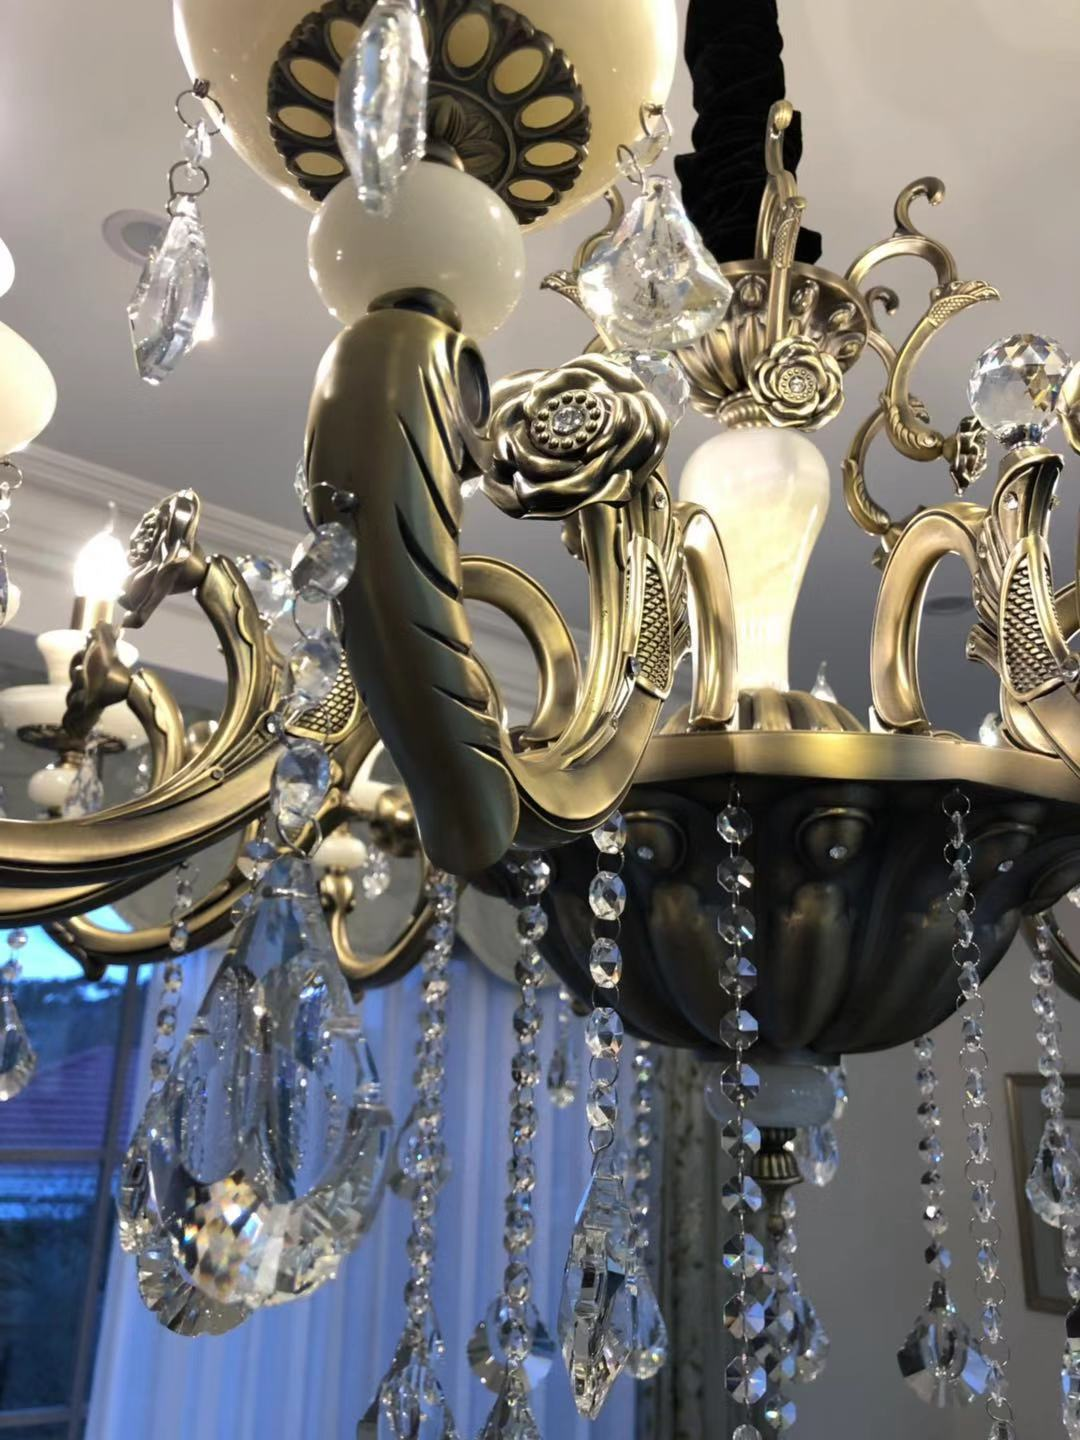 crystal chandelier / StairCass / High ceiling / Long Chandelier / Crystal Chandelier / melbourne chandelier / K9 Crystla / Sovosiky Chandelier / 8 Arms Chandelier / 6 Arms/ arms / Candles / Crystal Chandelier Extra large / Jade and Crystal Chandelier